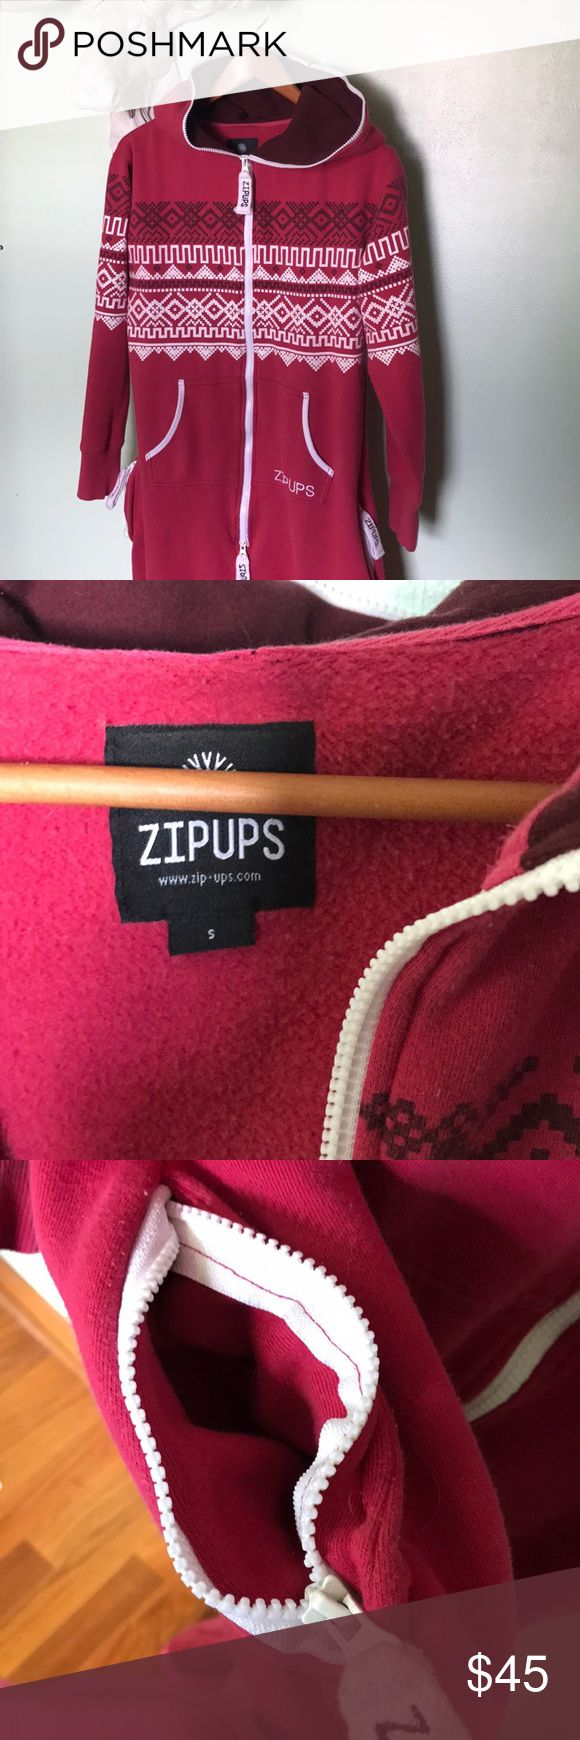 """ZIPUPS adult onesie GUC full hood pockets ski The ultimate in weekend lounge wear!!! This adult onesie by ZIPUPS is like a thick sweatshirt for your whole body. You can even zip your head fully in. Zipper pockets at hip. Size is unisex small, so like a women's medium. Length from shoulder to hem is just about 60"""" but slouchy legs are the look. I'm 5'6"""" and this fit me well. Pit to pit is 20"""". Hips are 25"""" measured flat. GUC. Some minor pilling and wash wear. zipups Intimates & Sleepwear…"""